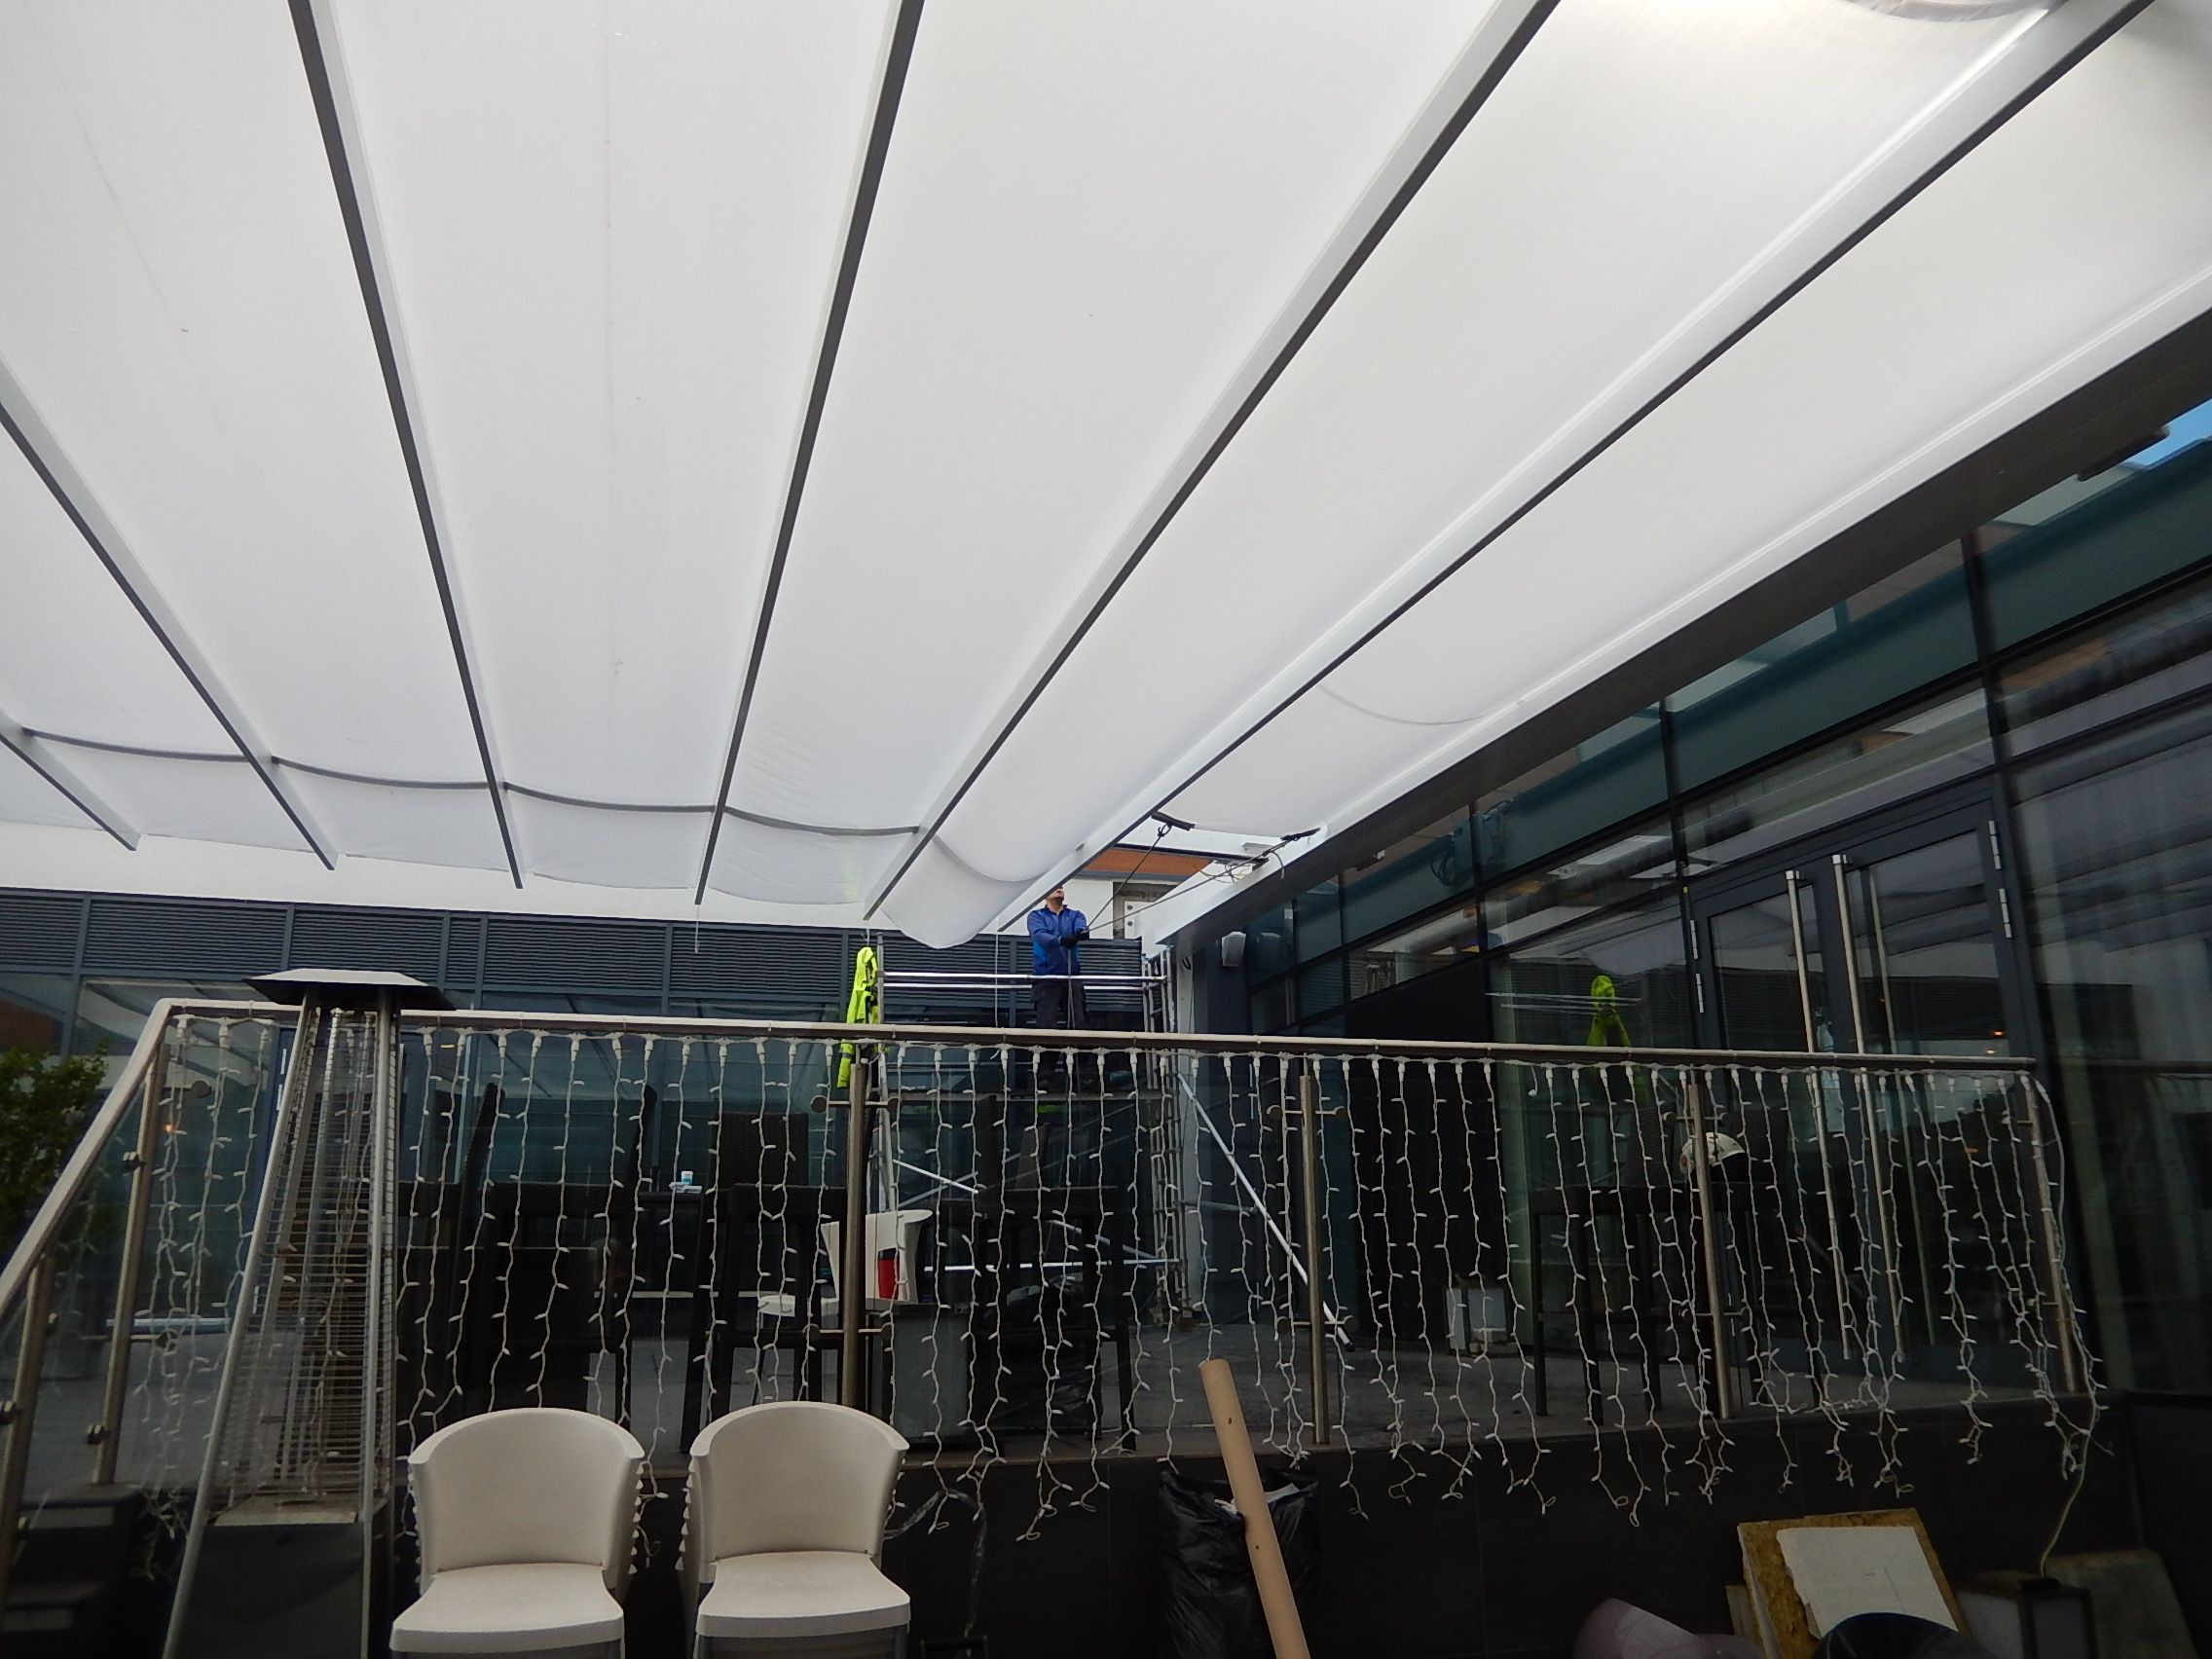 Retractable Fabric Canopy Using Sefar Tenara Fabric 4t40hf